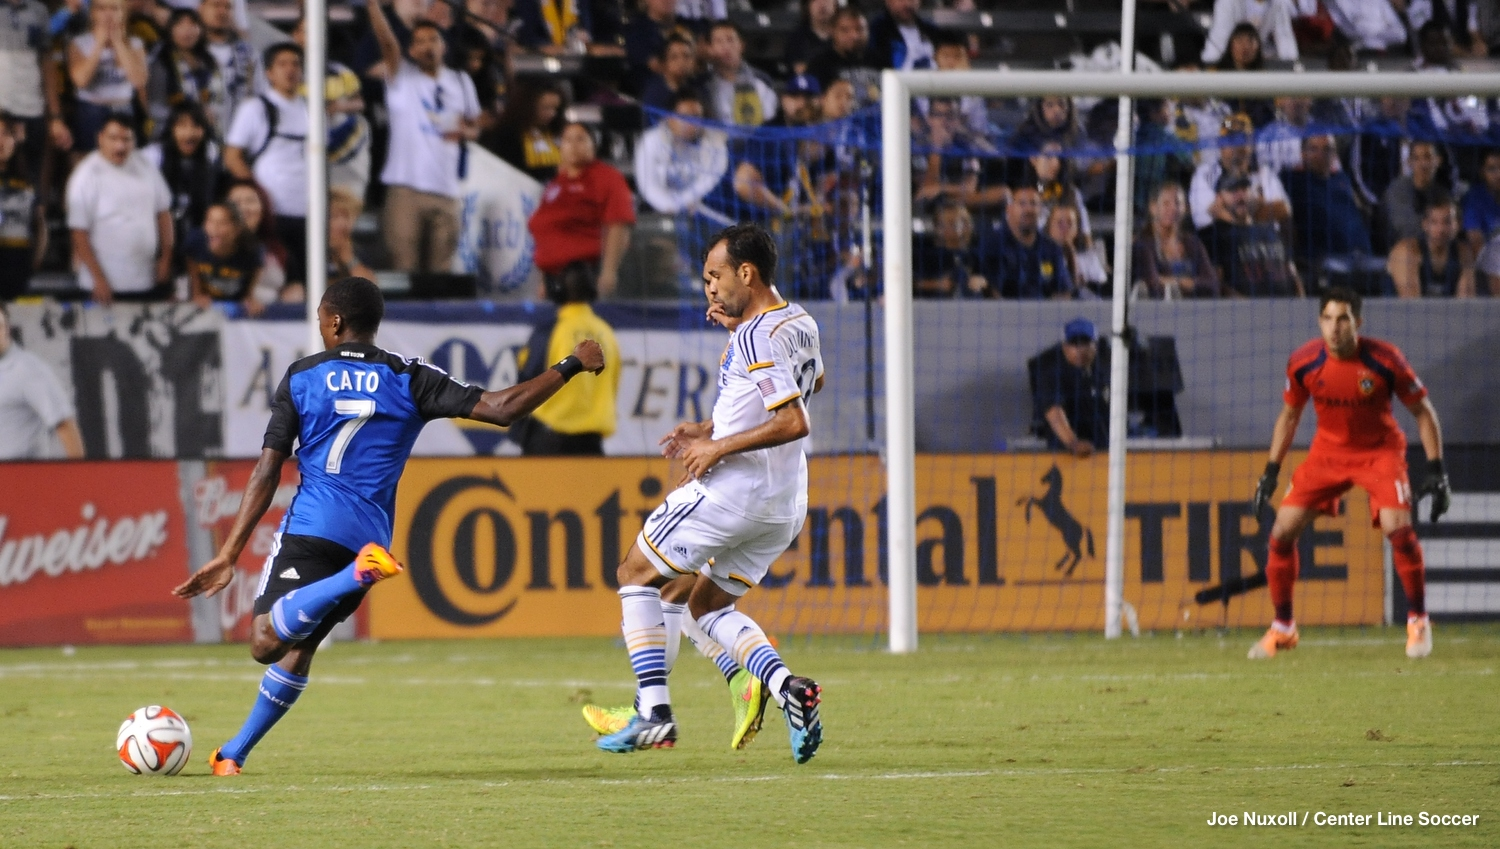 Cato's was the only San Jose shot on goal not to hit the back of the net.